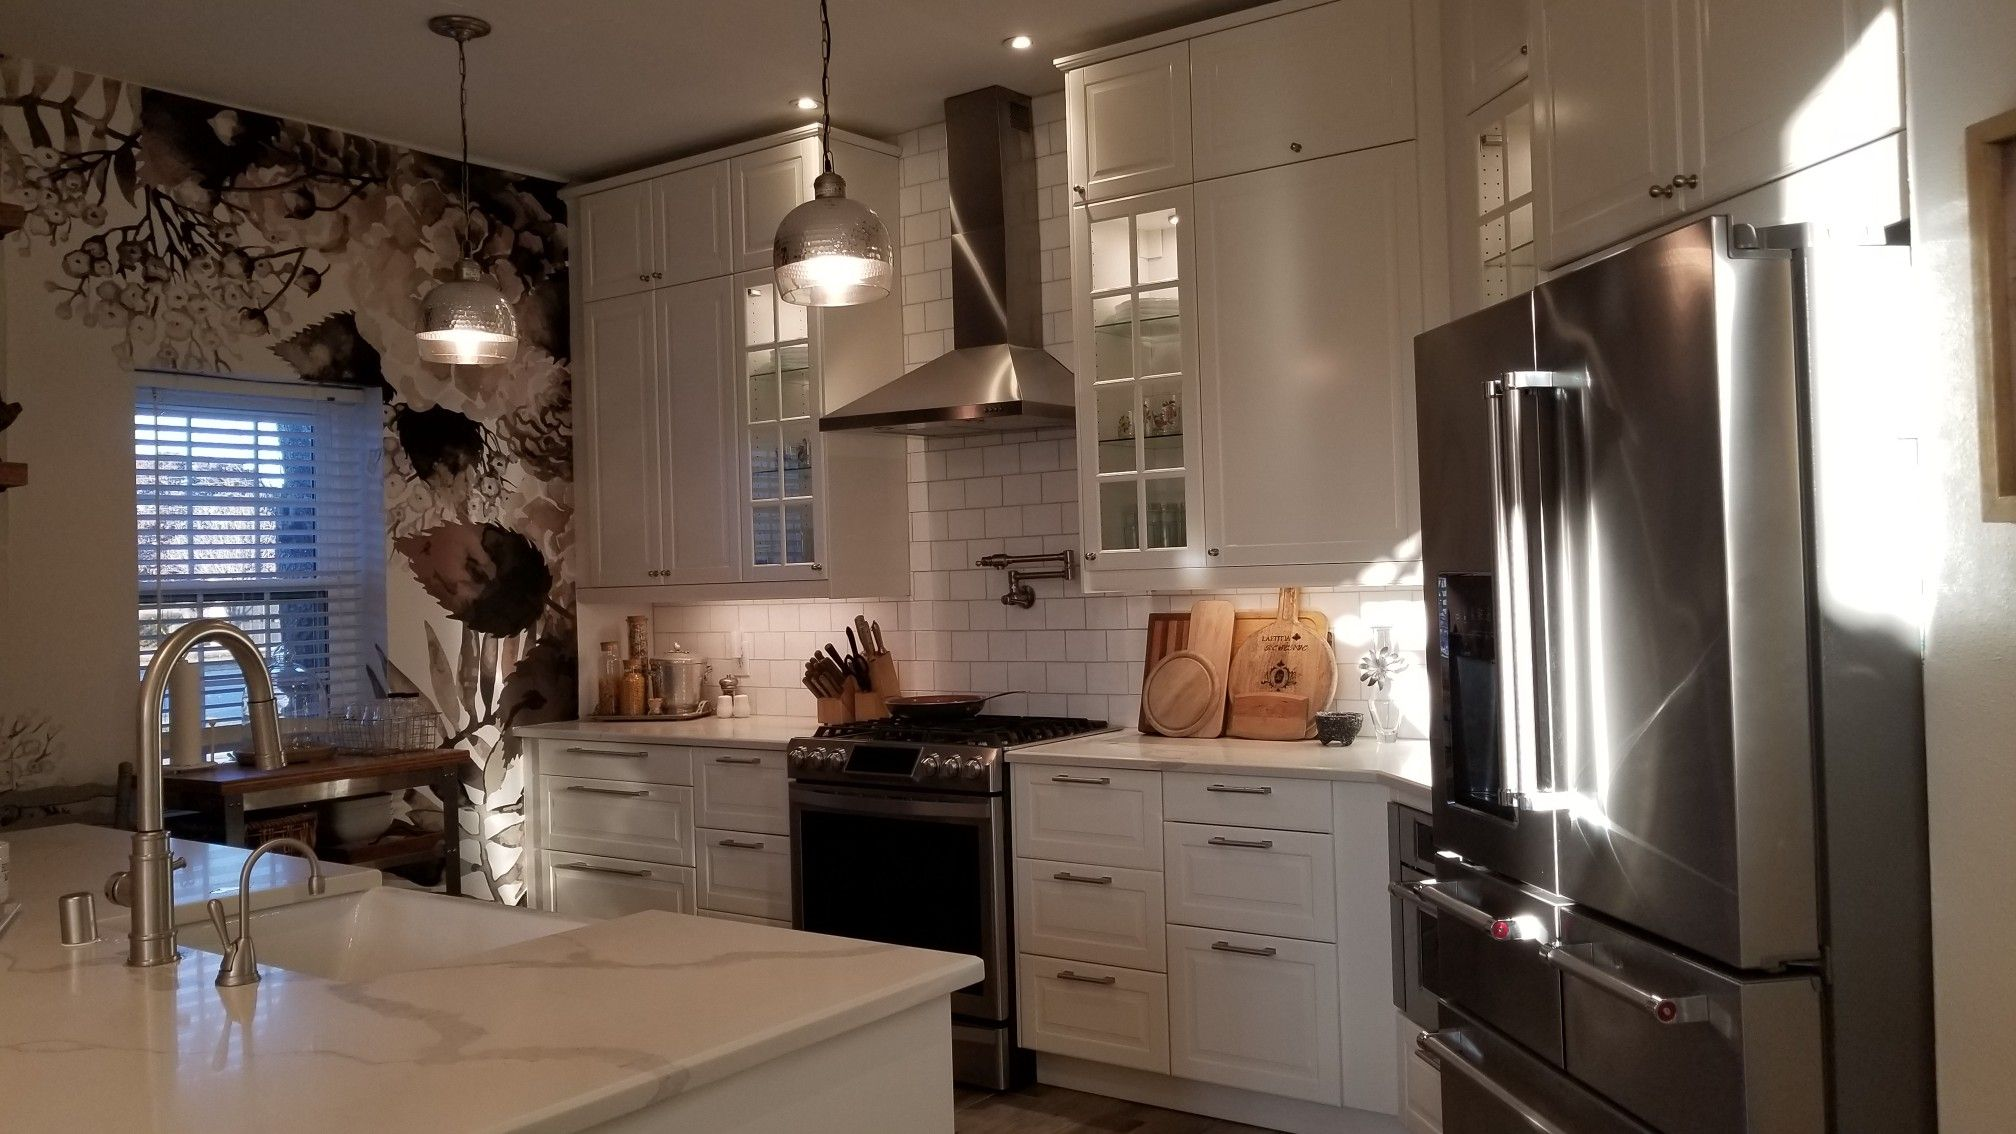 Pin By Laurie Rider On My Kitchen Remodel Kitchen Kitchen Remodel Kitchen Cabinets